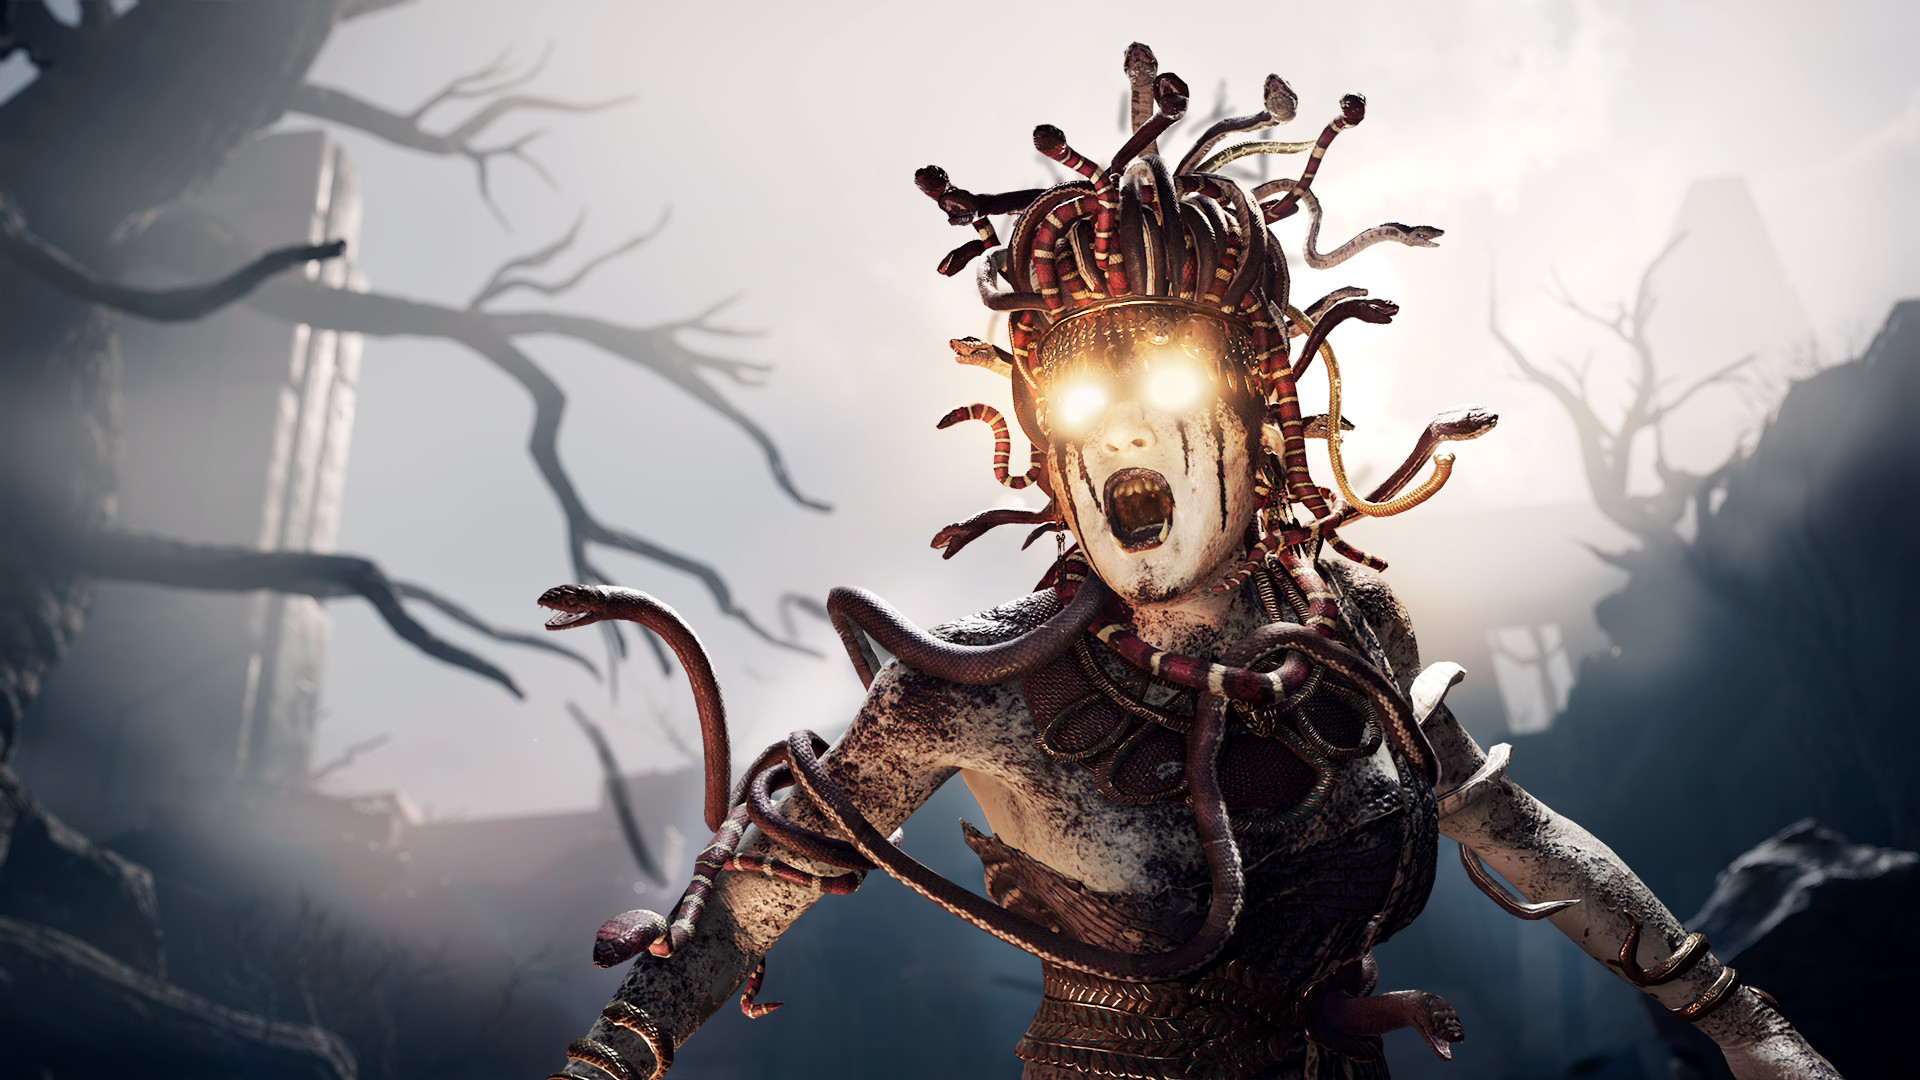 Saving Medusa for the end of Assassin's Creed Odyssey made beating it even sweeter